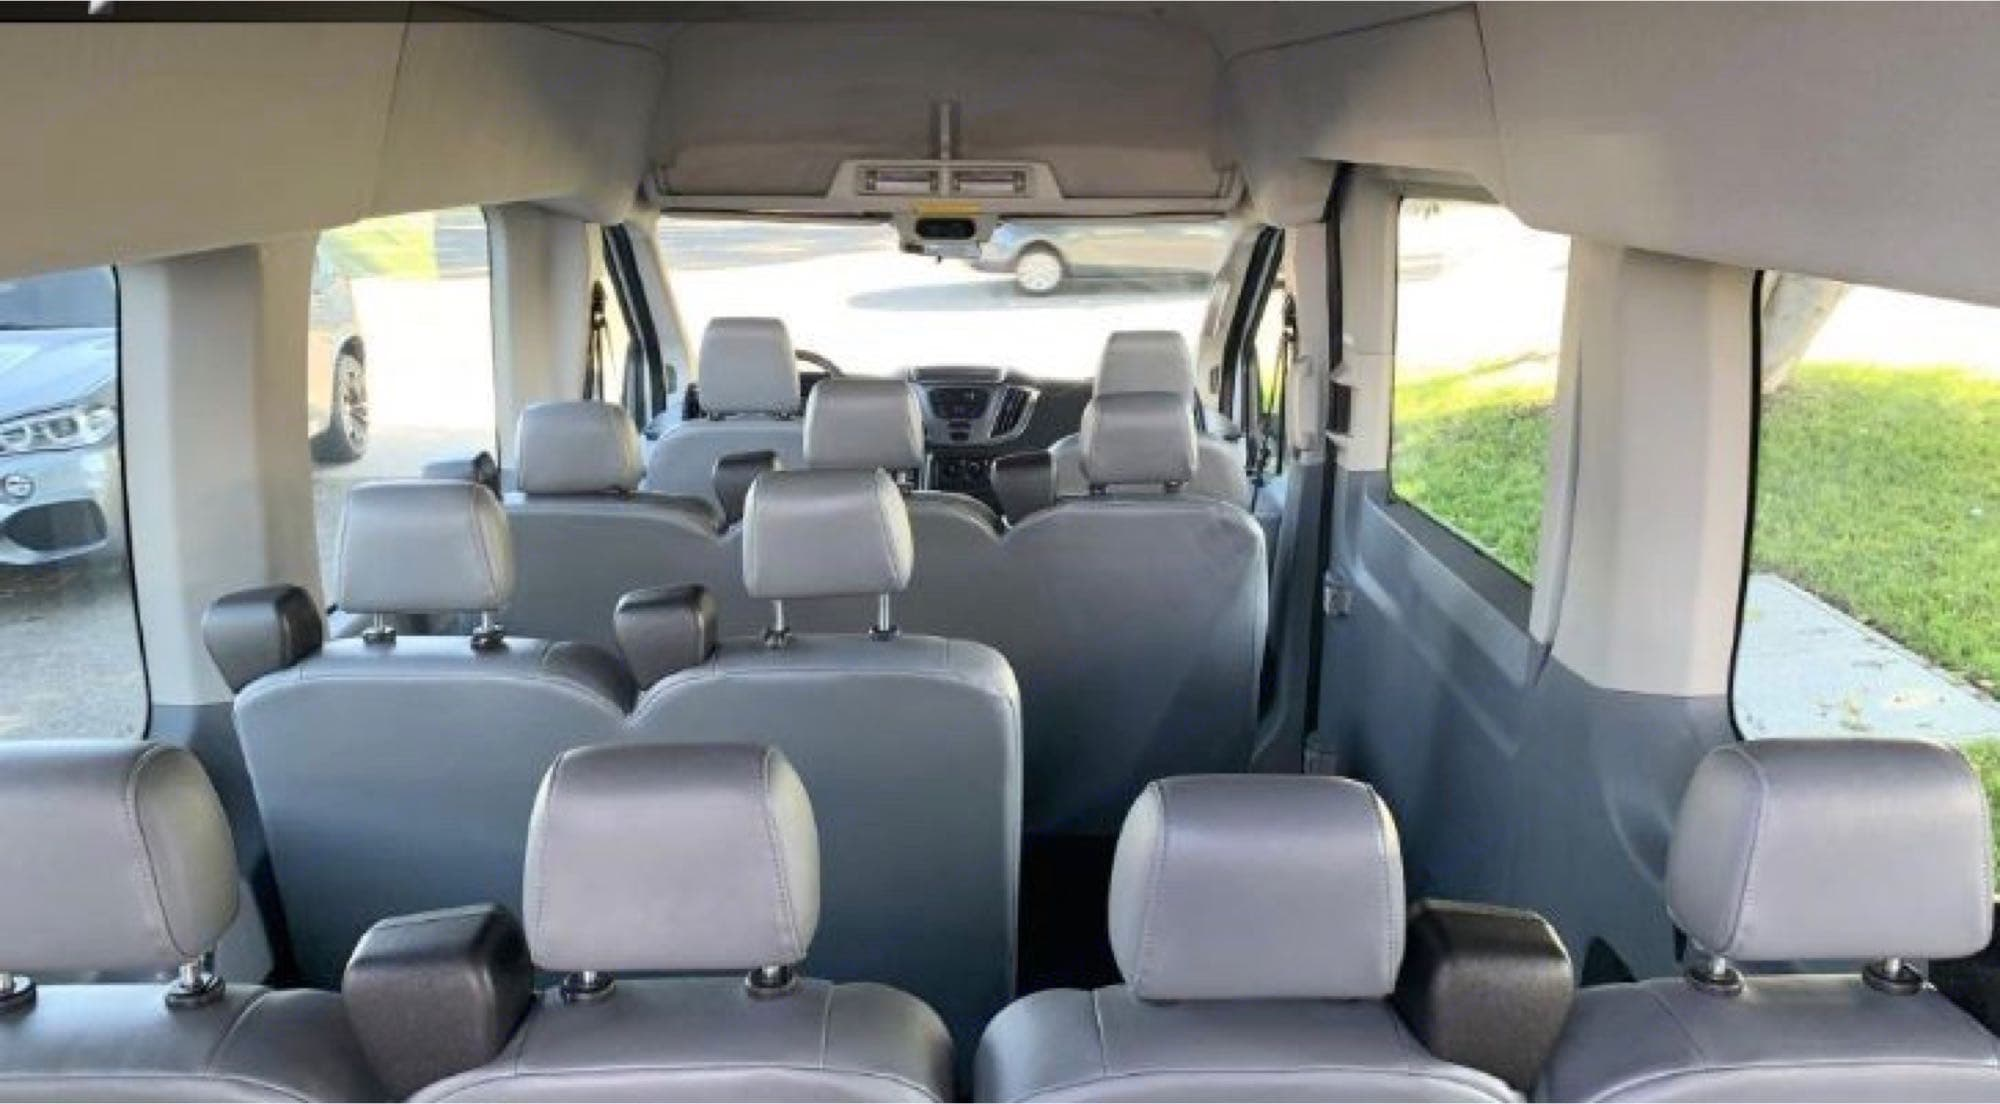 Up to 10 passengers with seatbelts for each seat. back seats must be grouped 3, or 2, or 4. Ford Transit Wagon 350 2015